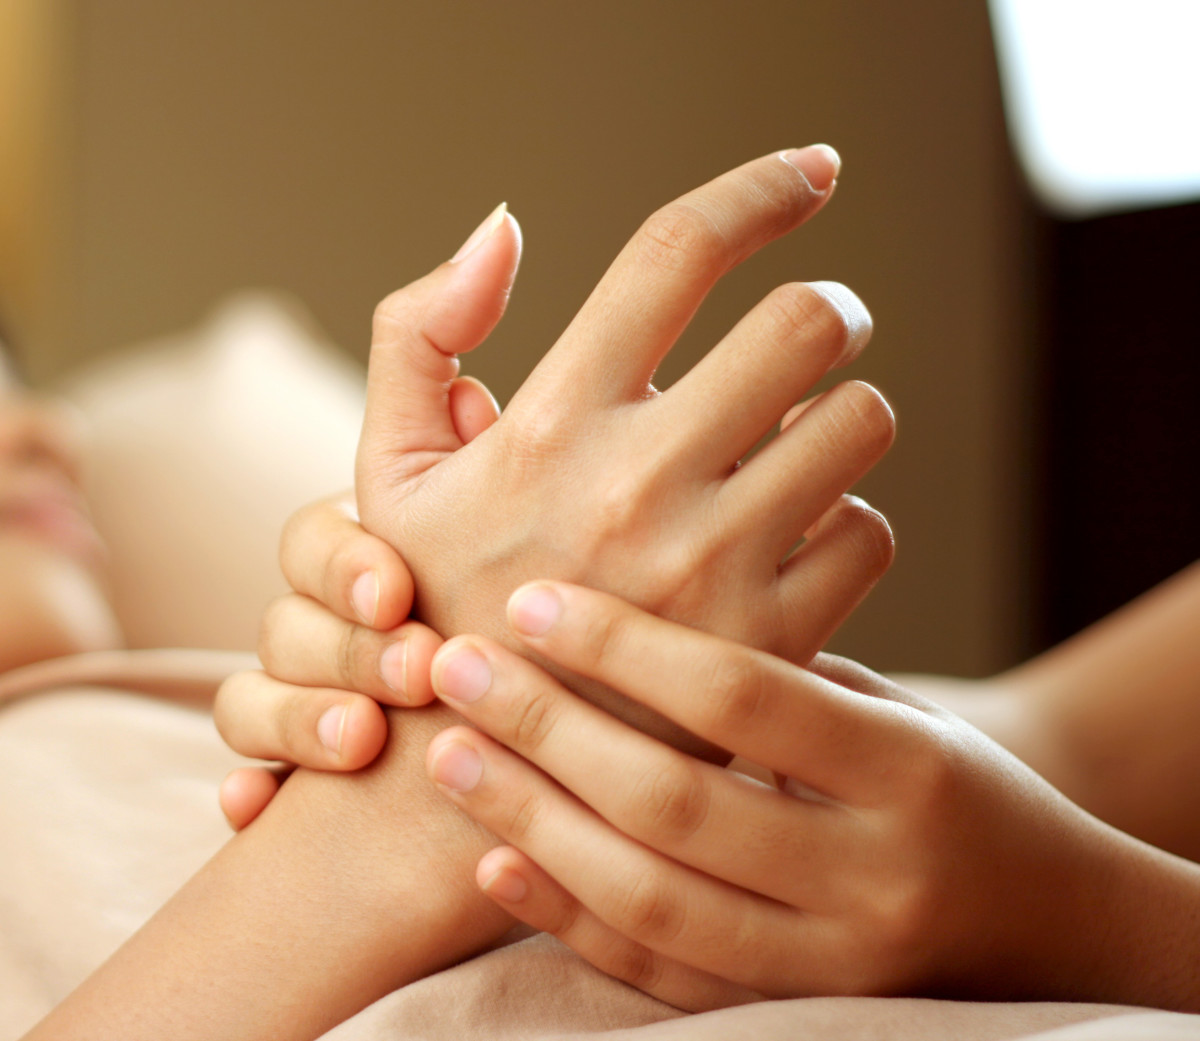 Healing Benefits of Pressure Point Massage